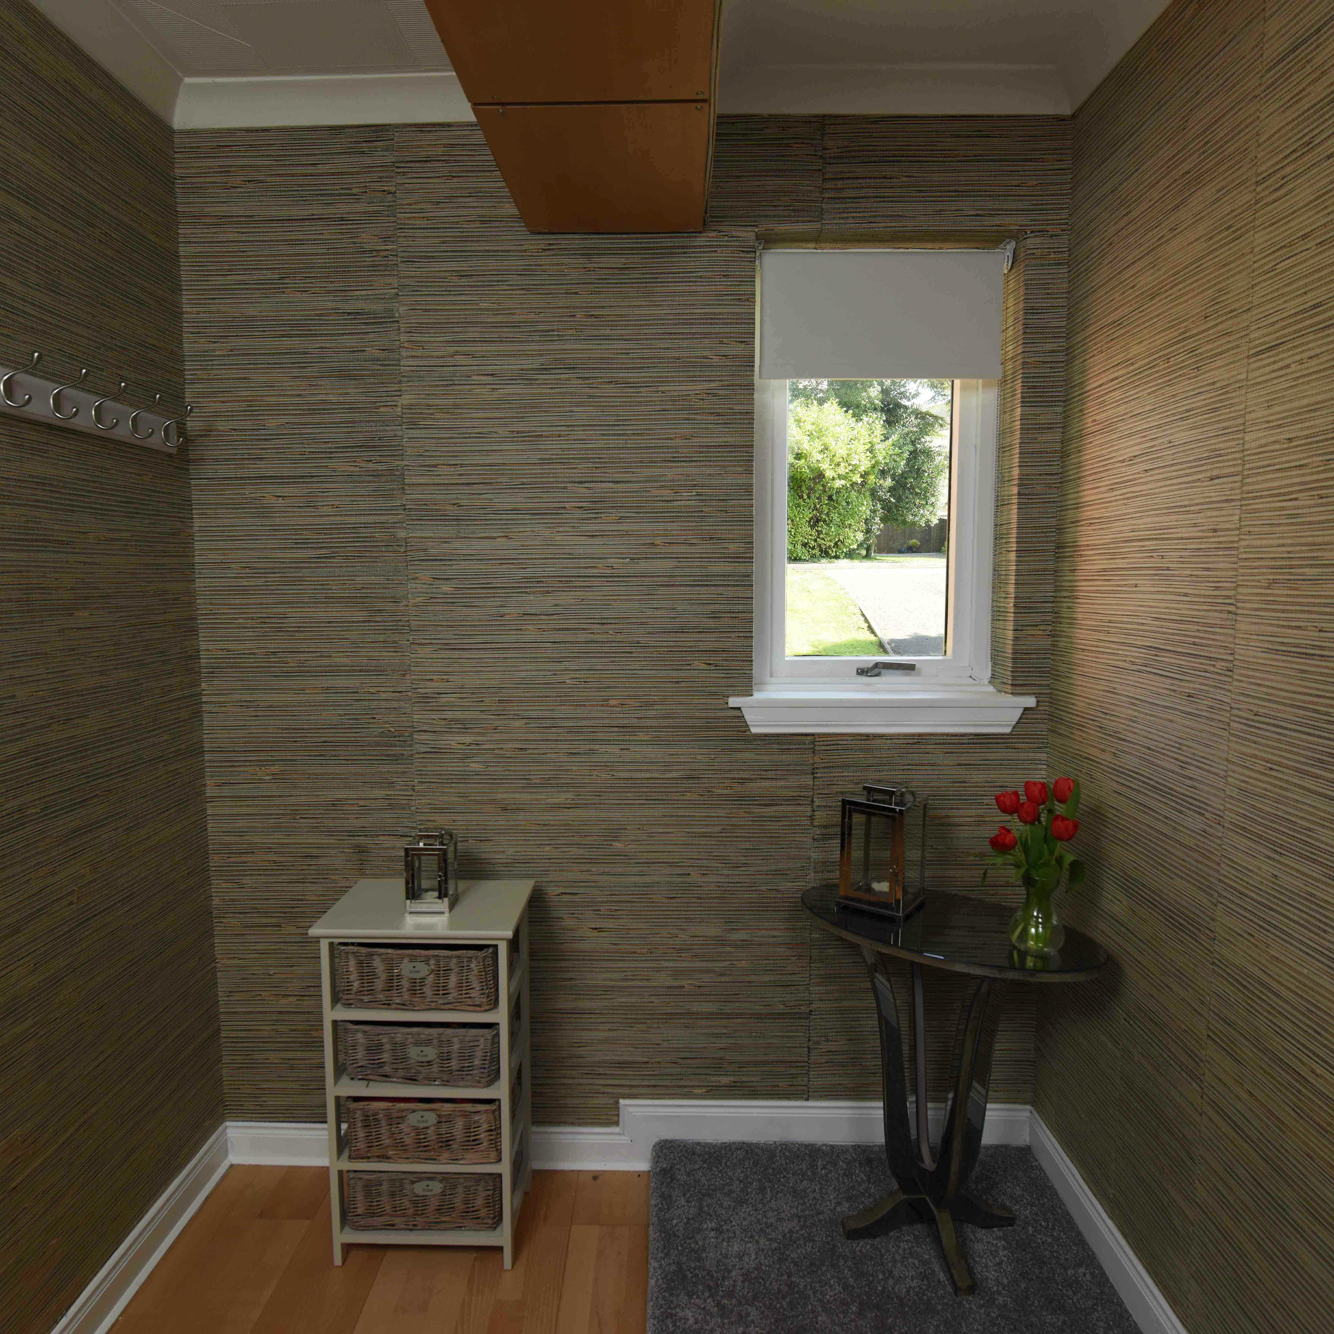 Rooms With Grasscloth Wallpaper: Harvest Gold Seagrass Natural Grasscloth Wallpaper